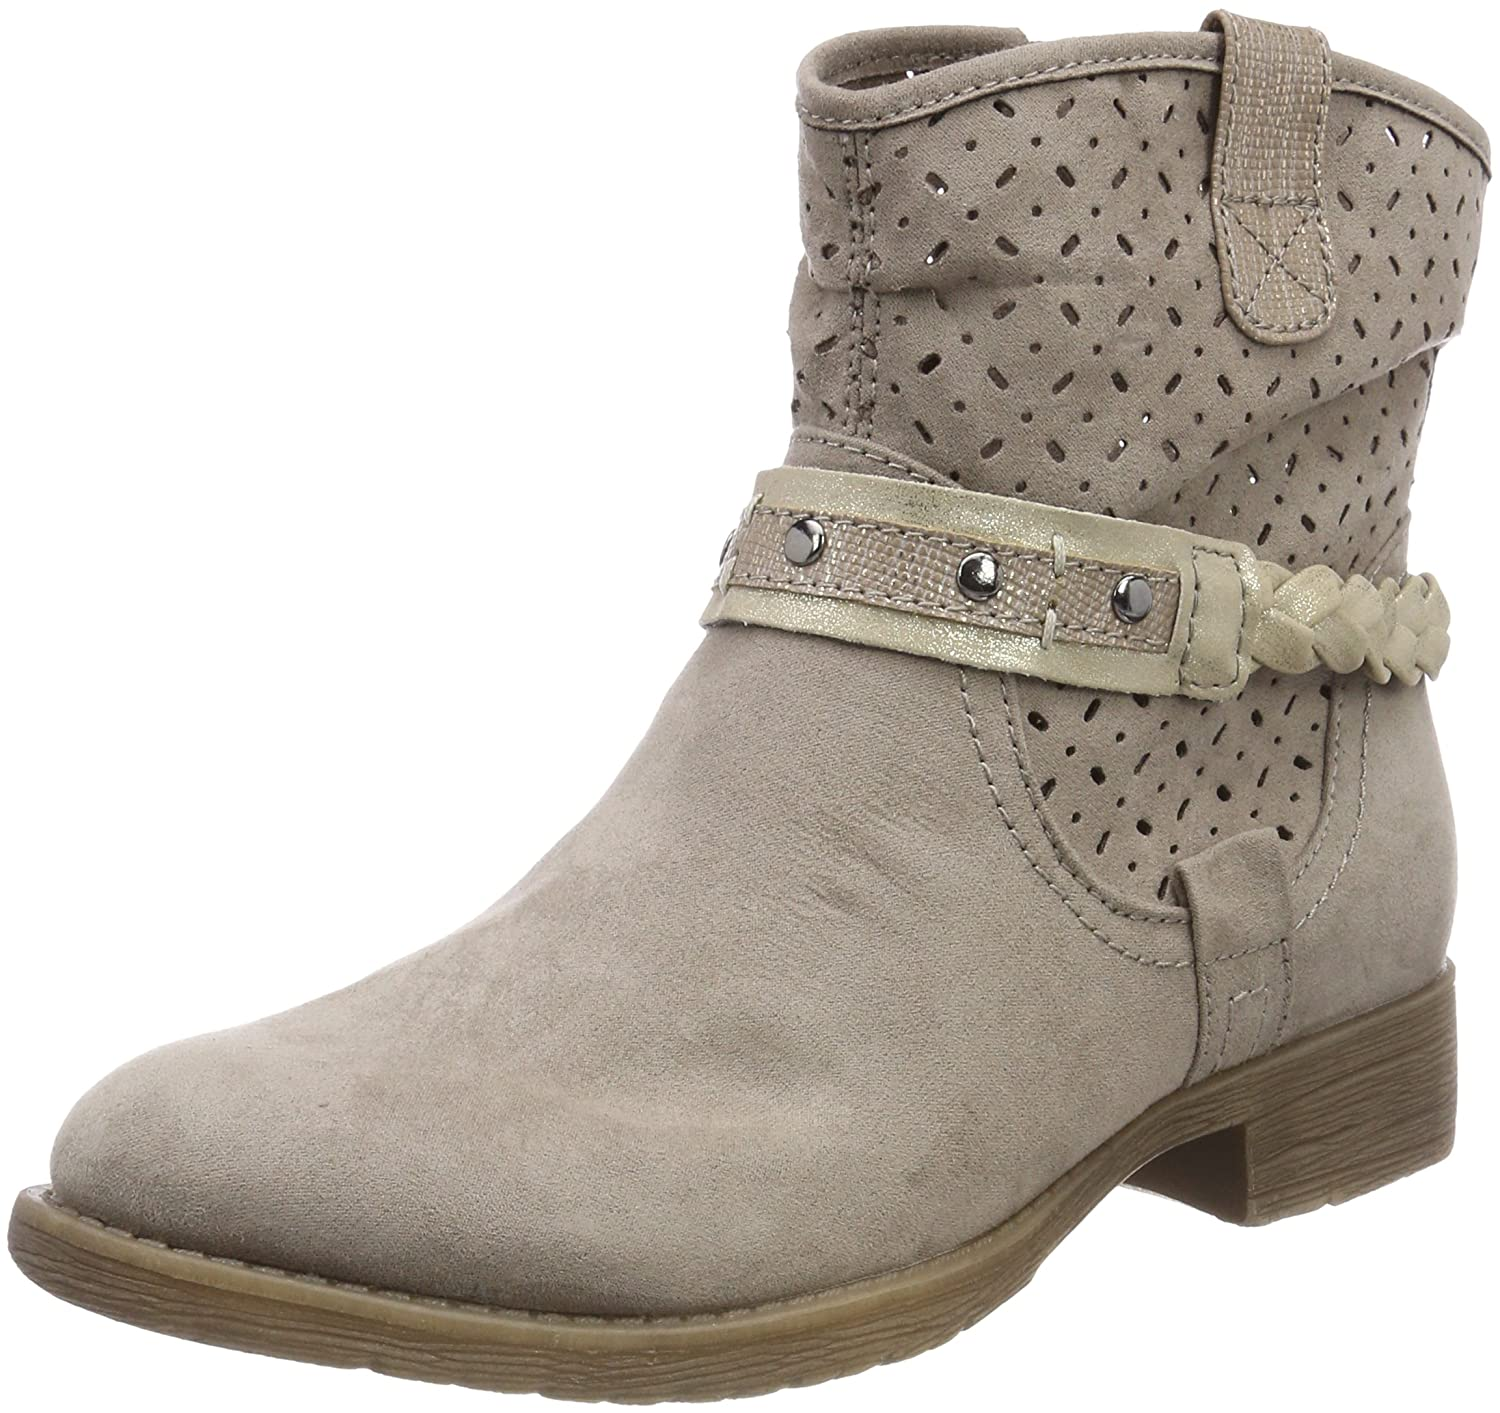 Jana 25403, B079QKWNP8 Botines 25403, Femme Botines Beige (Lt. Taupe) 0645d9a - shopssong.space